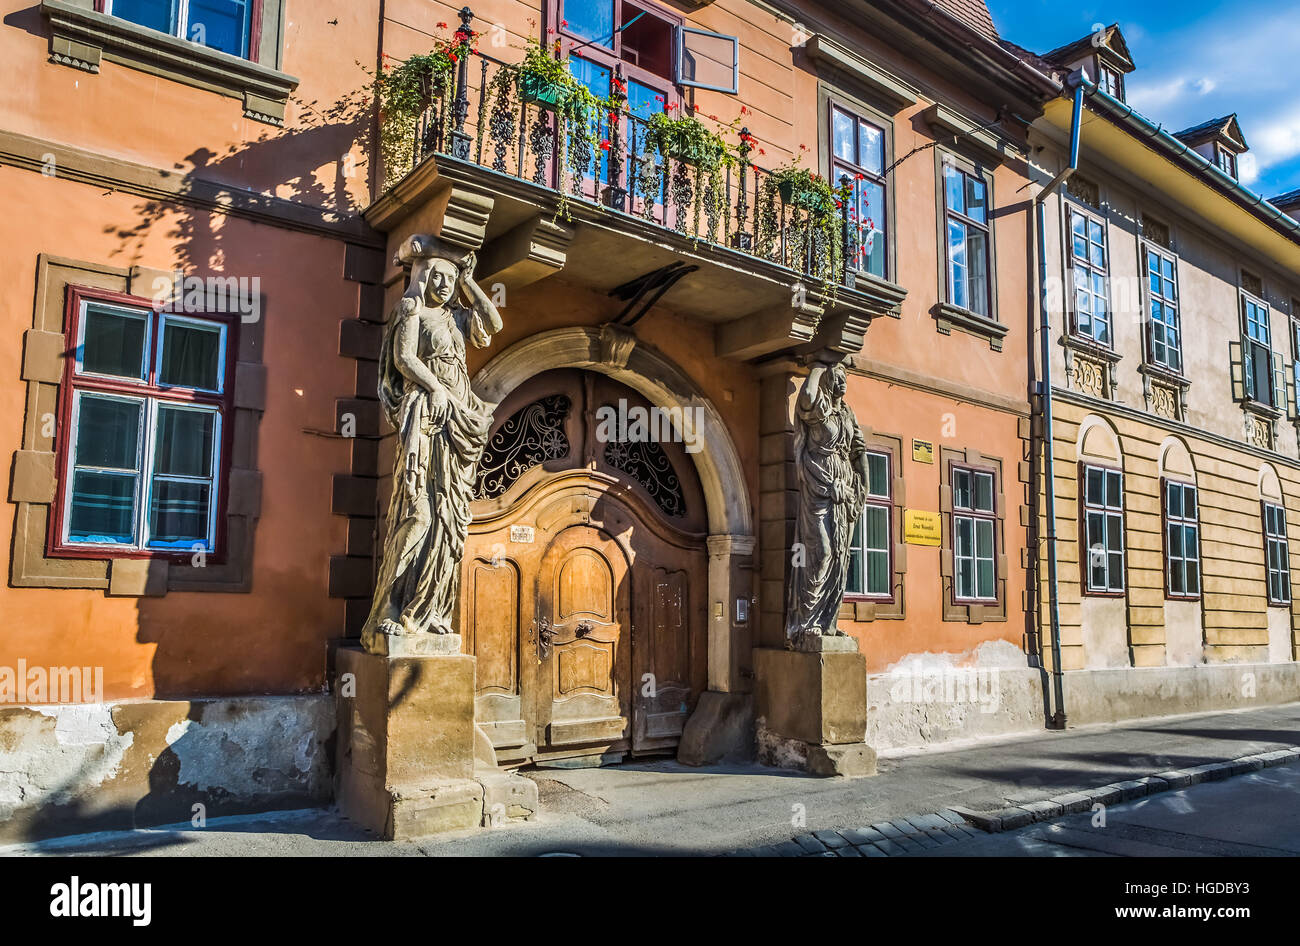 Romania, Sibiu City, Old Town street - Stock Image